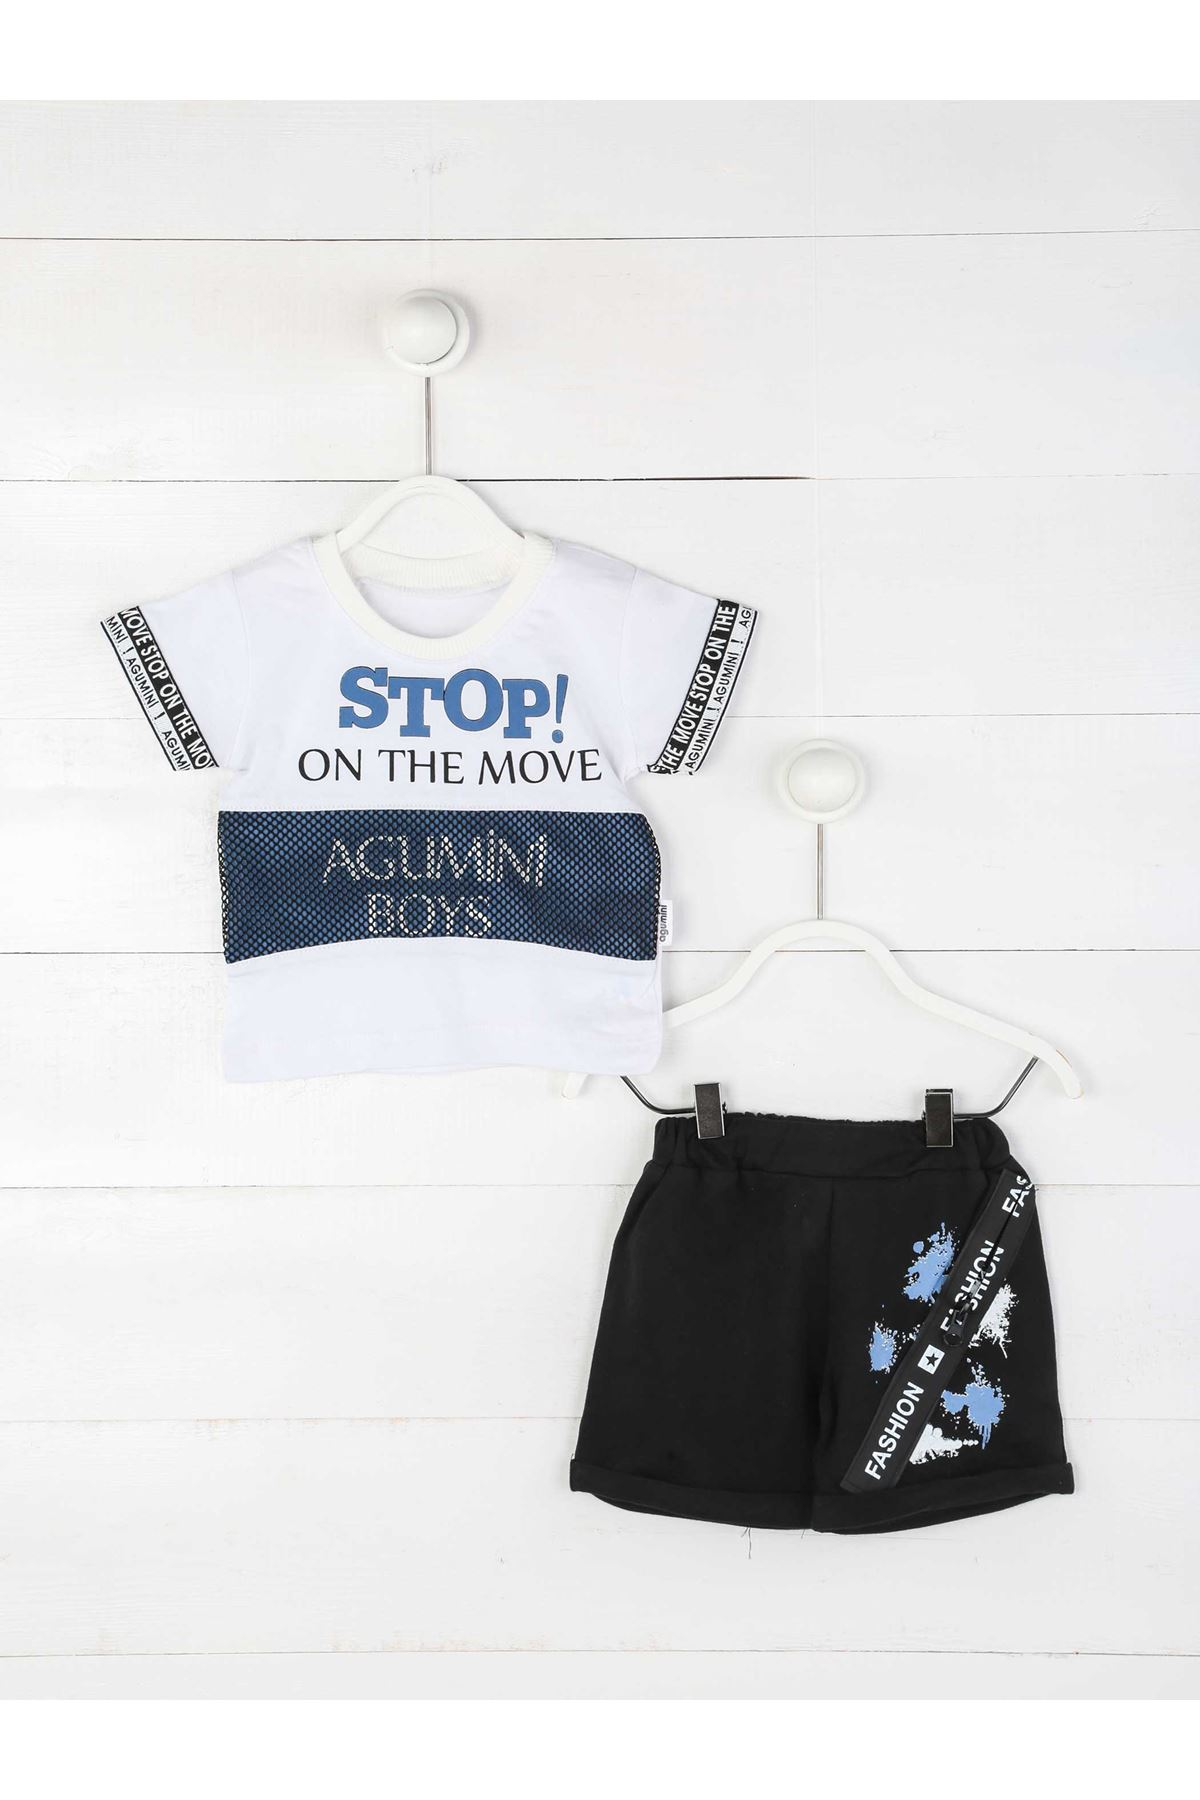 Baby Boy Bottom Top Summer Gentleman Babies Cute Casual Casual Cotton Clothing Sets Models and Types